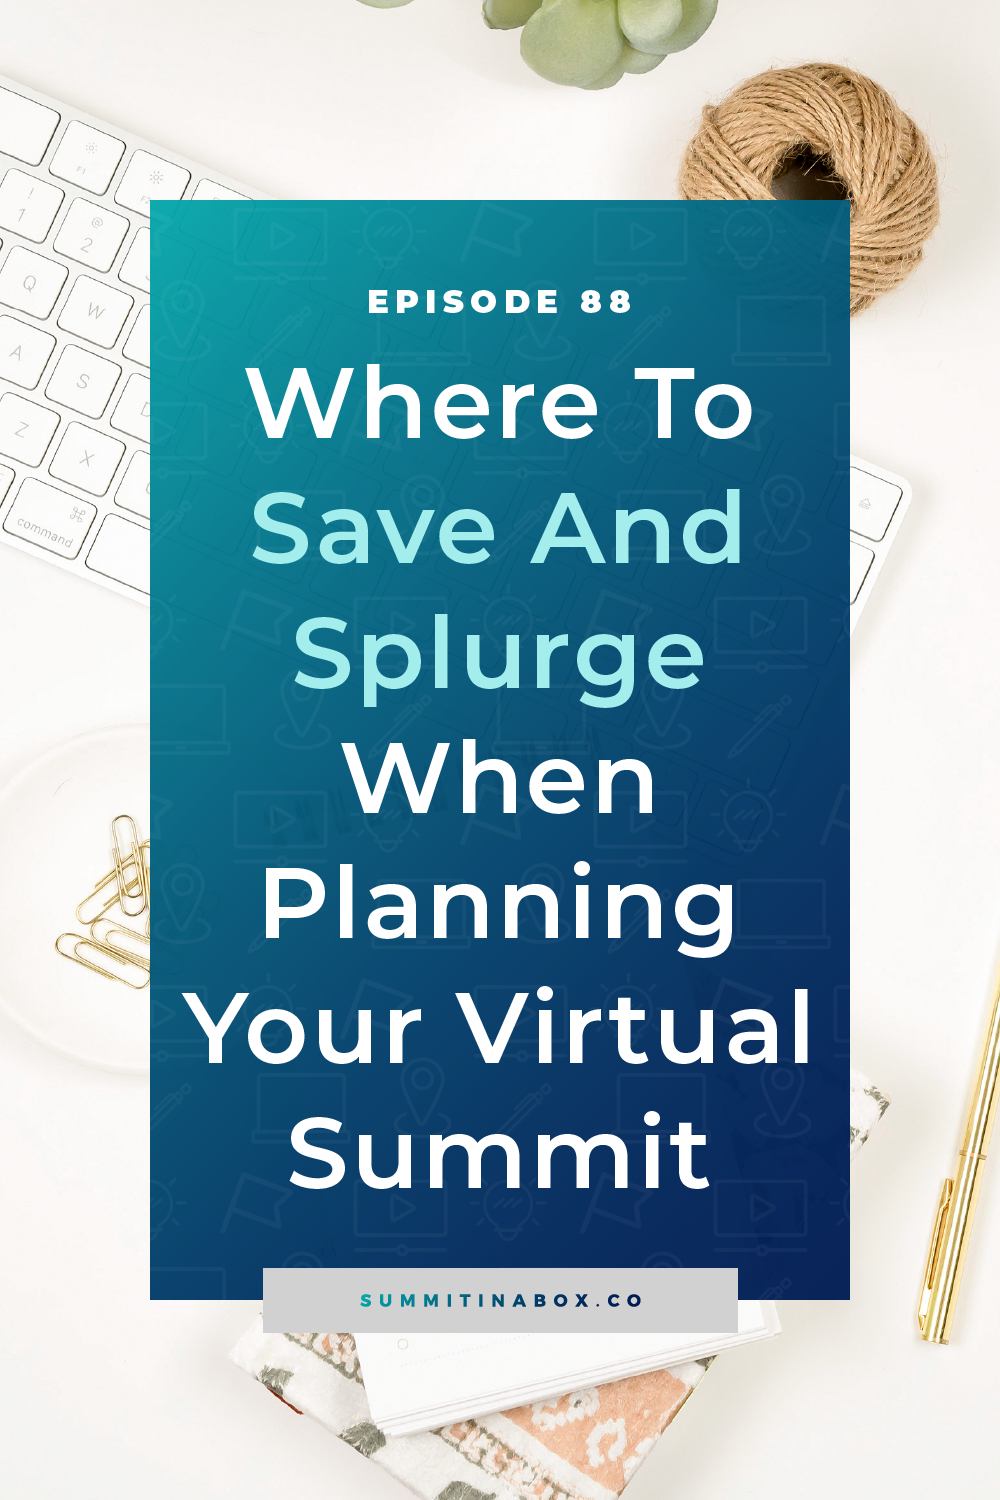 You don't have to have a huge budget to host a virtual summit. Here are the top 4 places to save and splurge when putting together your event.